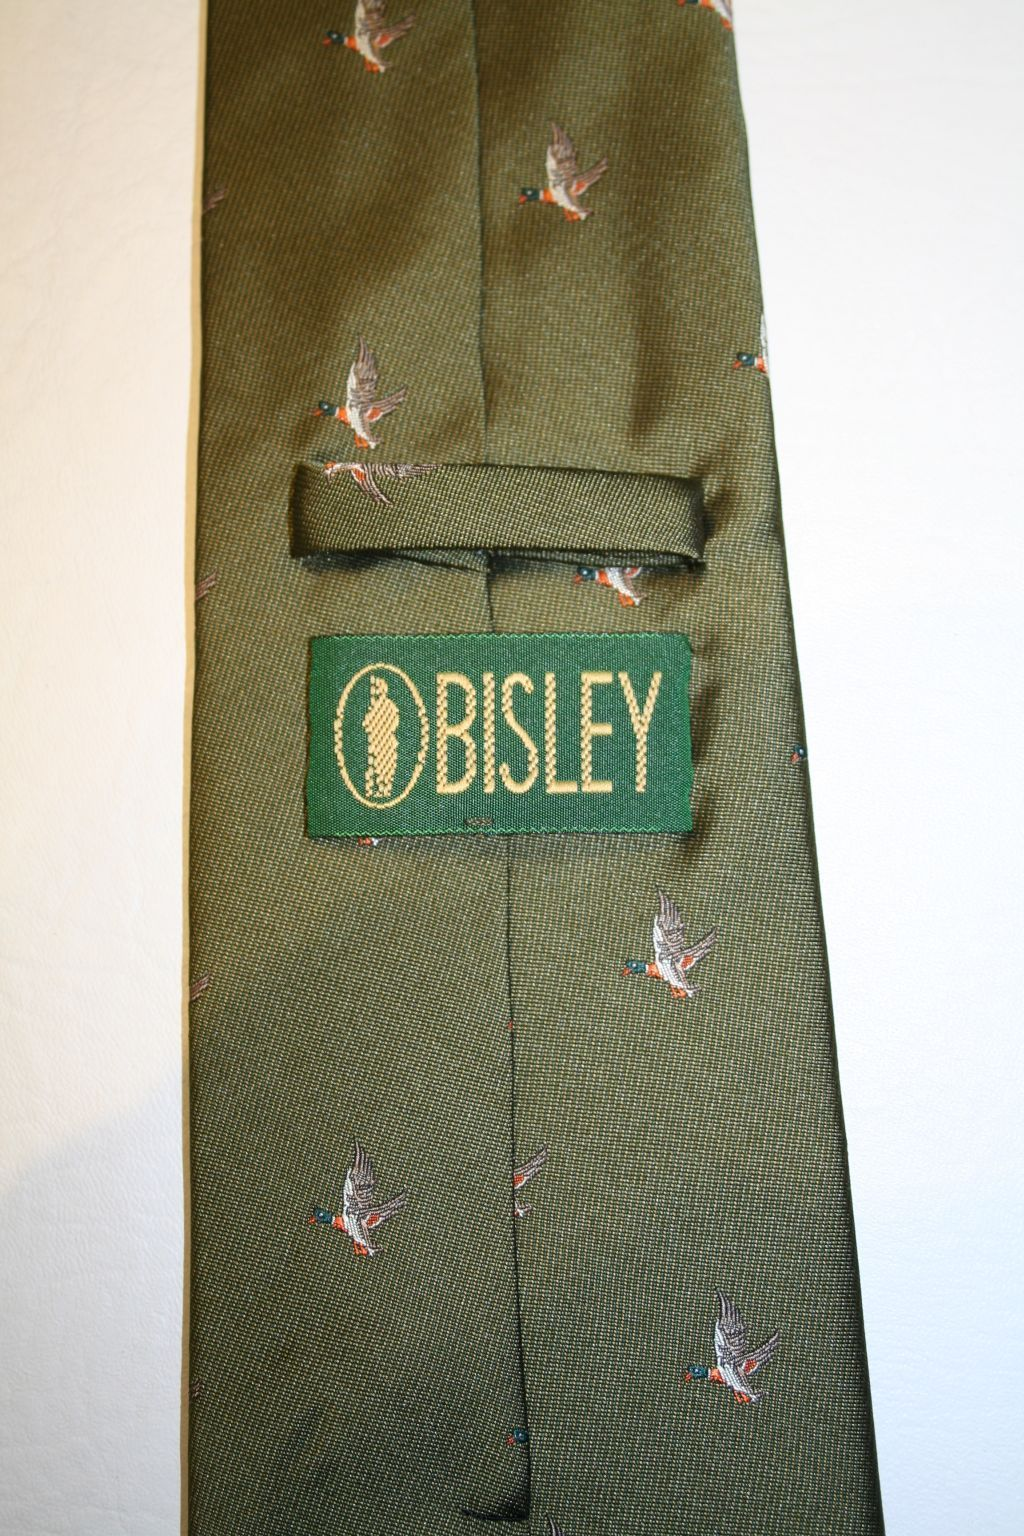 Bisley Shooting Tie Featuring Flying Ducks On Green Background